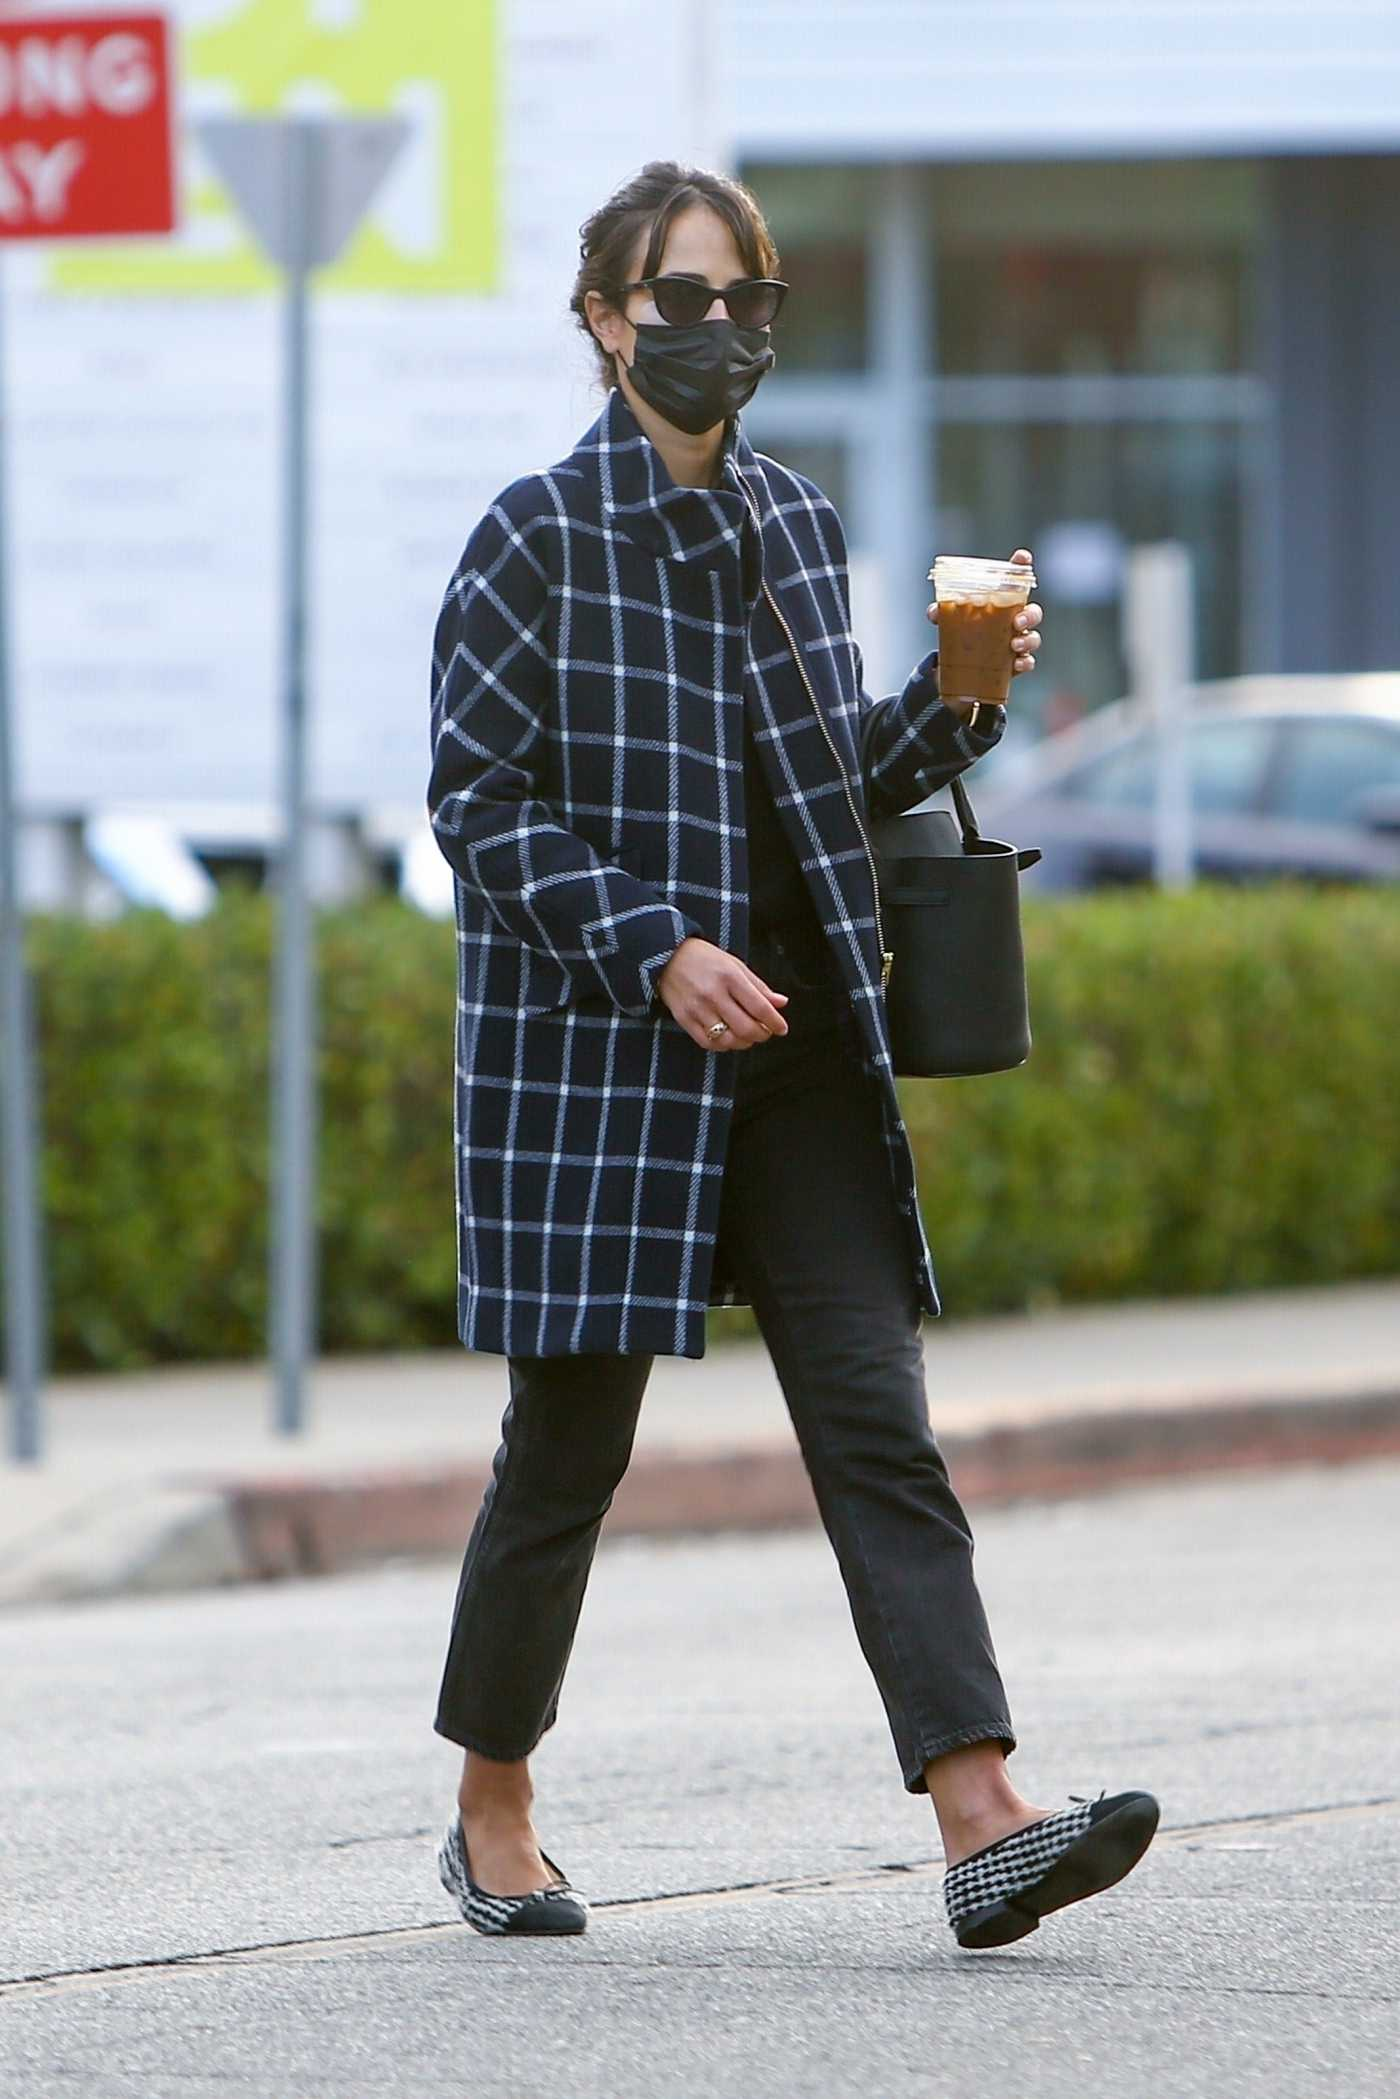 Jordana Brewster in a Blue Plaid Coat Was Seen Out in Brentwood 12/17/2020